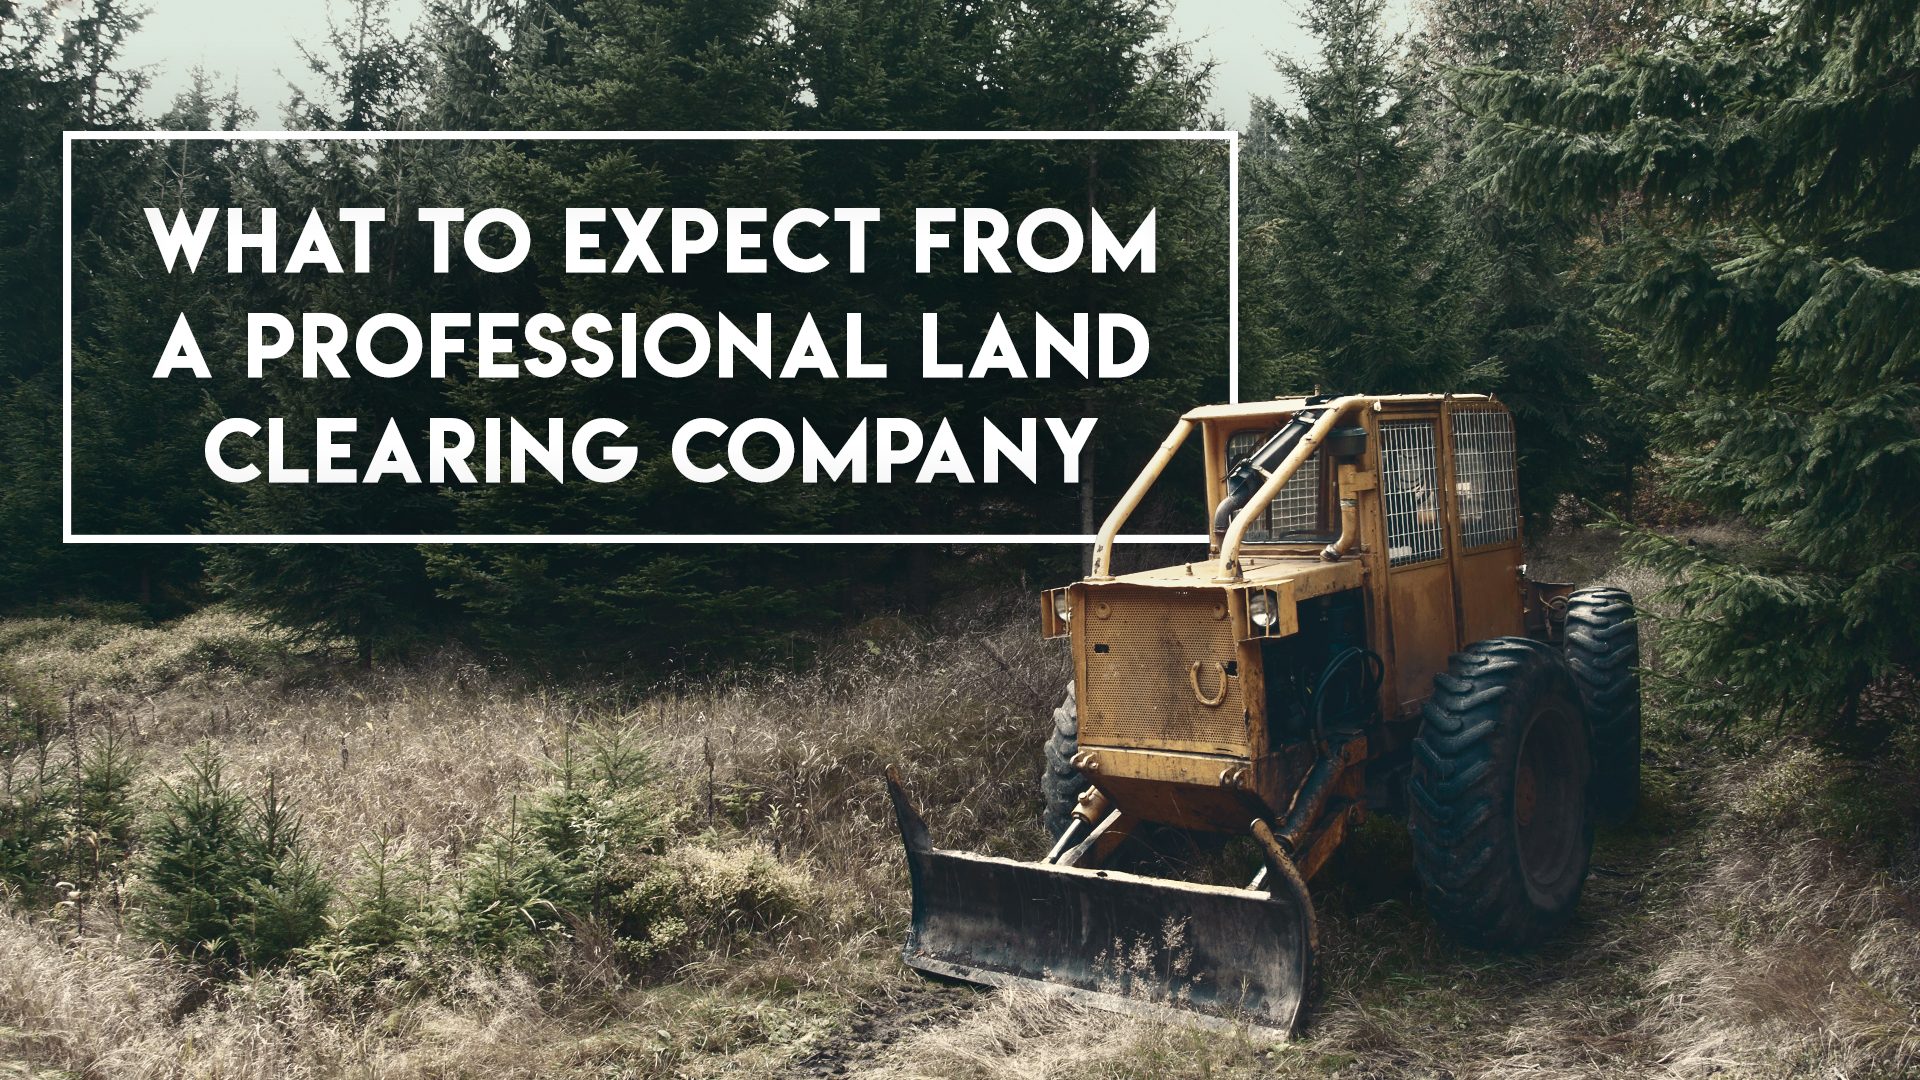 Land clearing, Ground Clearing, site development, Steelwrist Equipment, lot clearing near me | Grovin Farms, FL